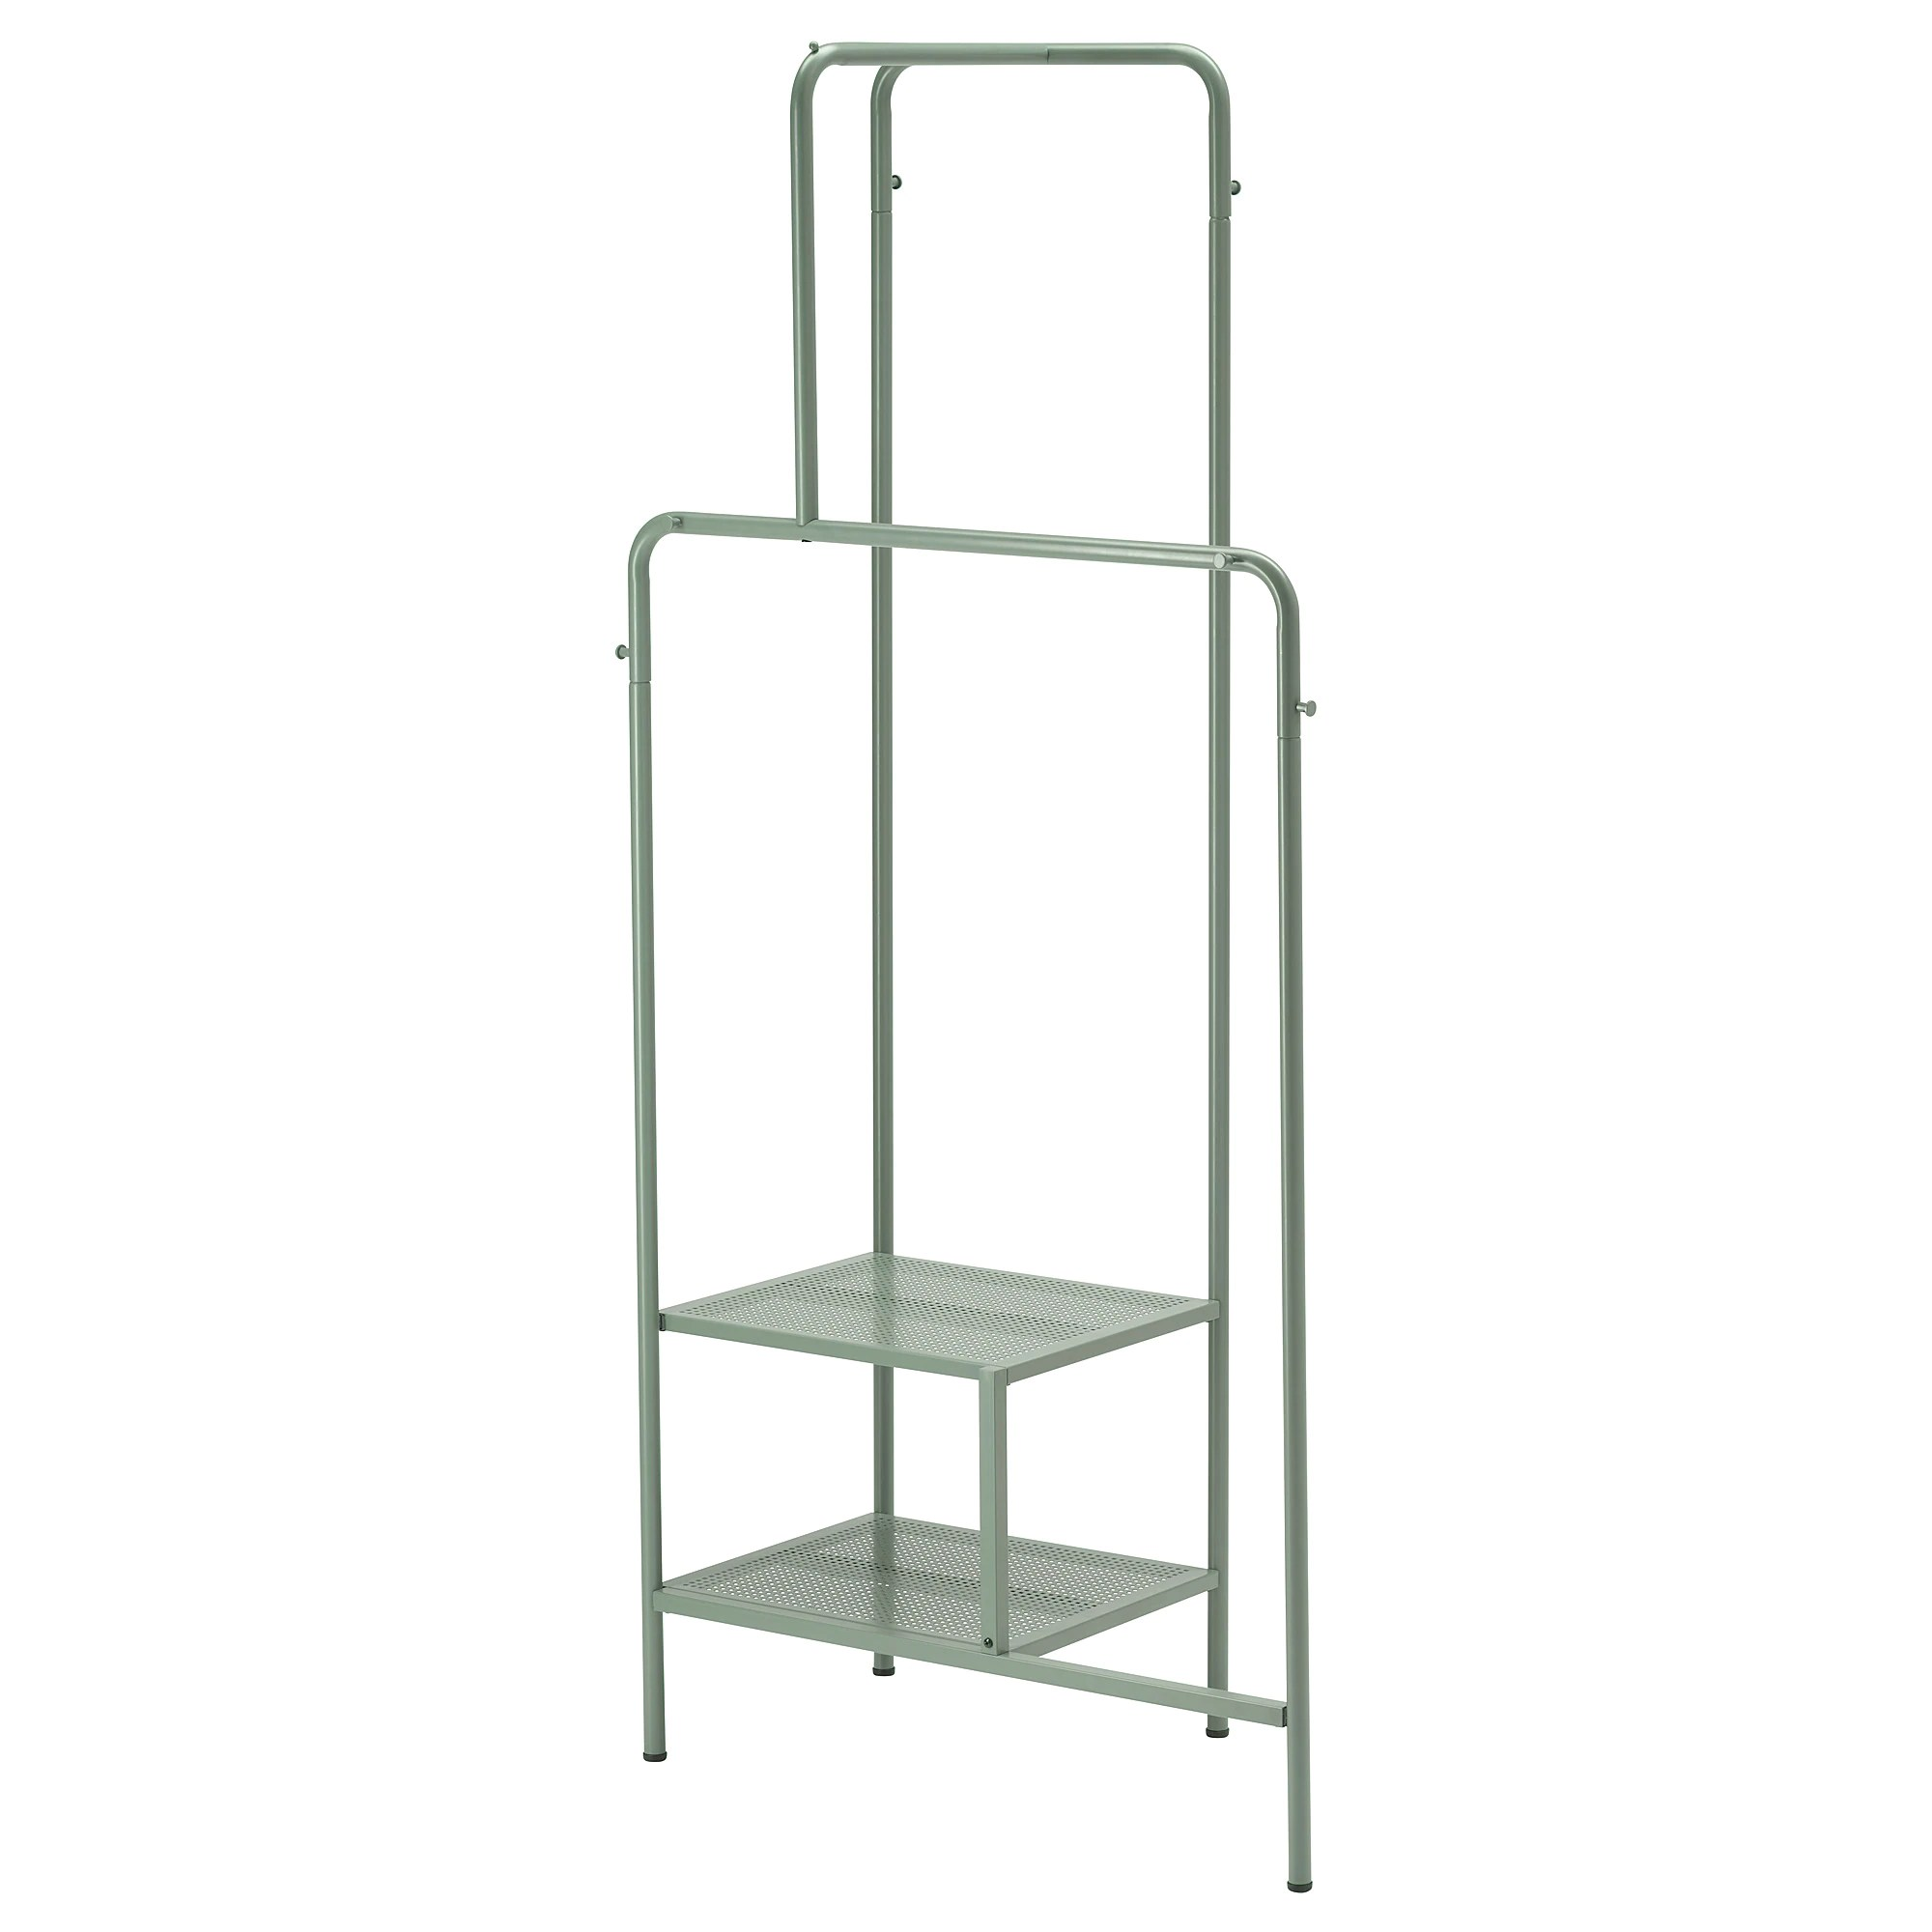 Ikea Wardrobe Leaning To One Side Clothes Rack Nikkeby Gray Green